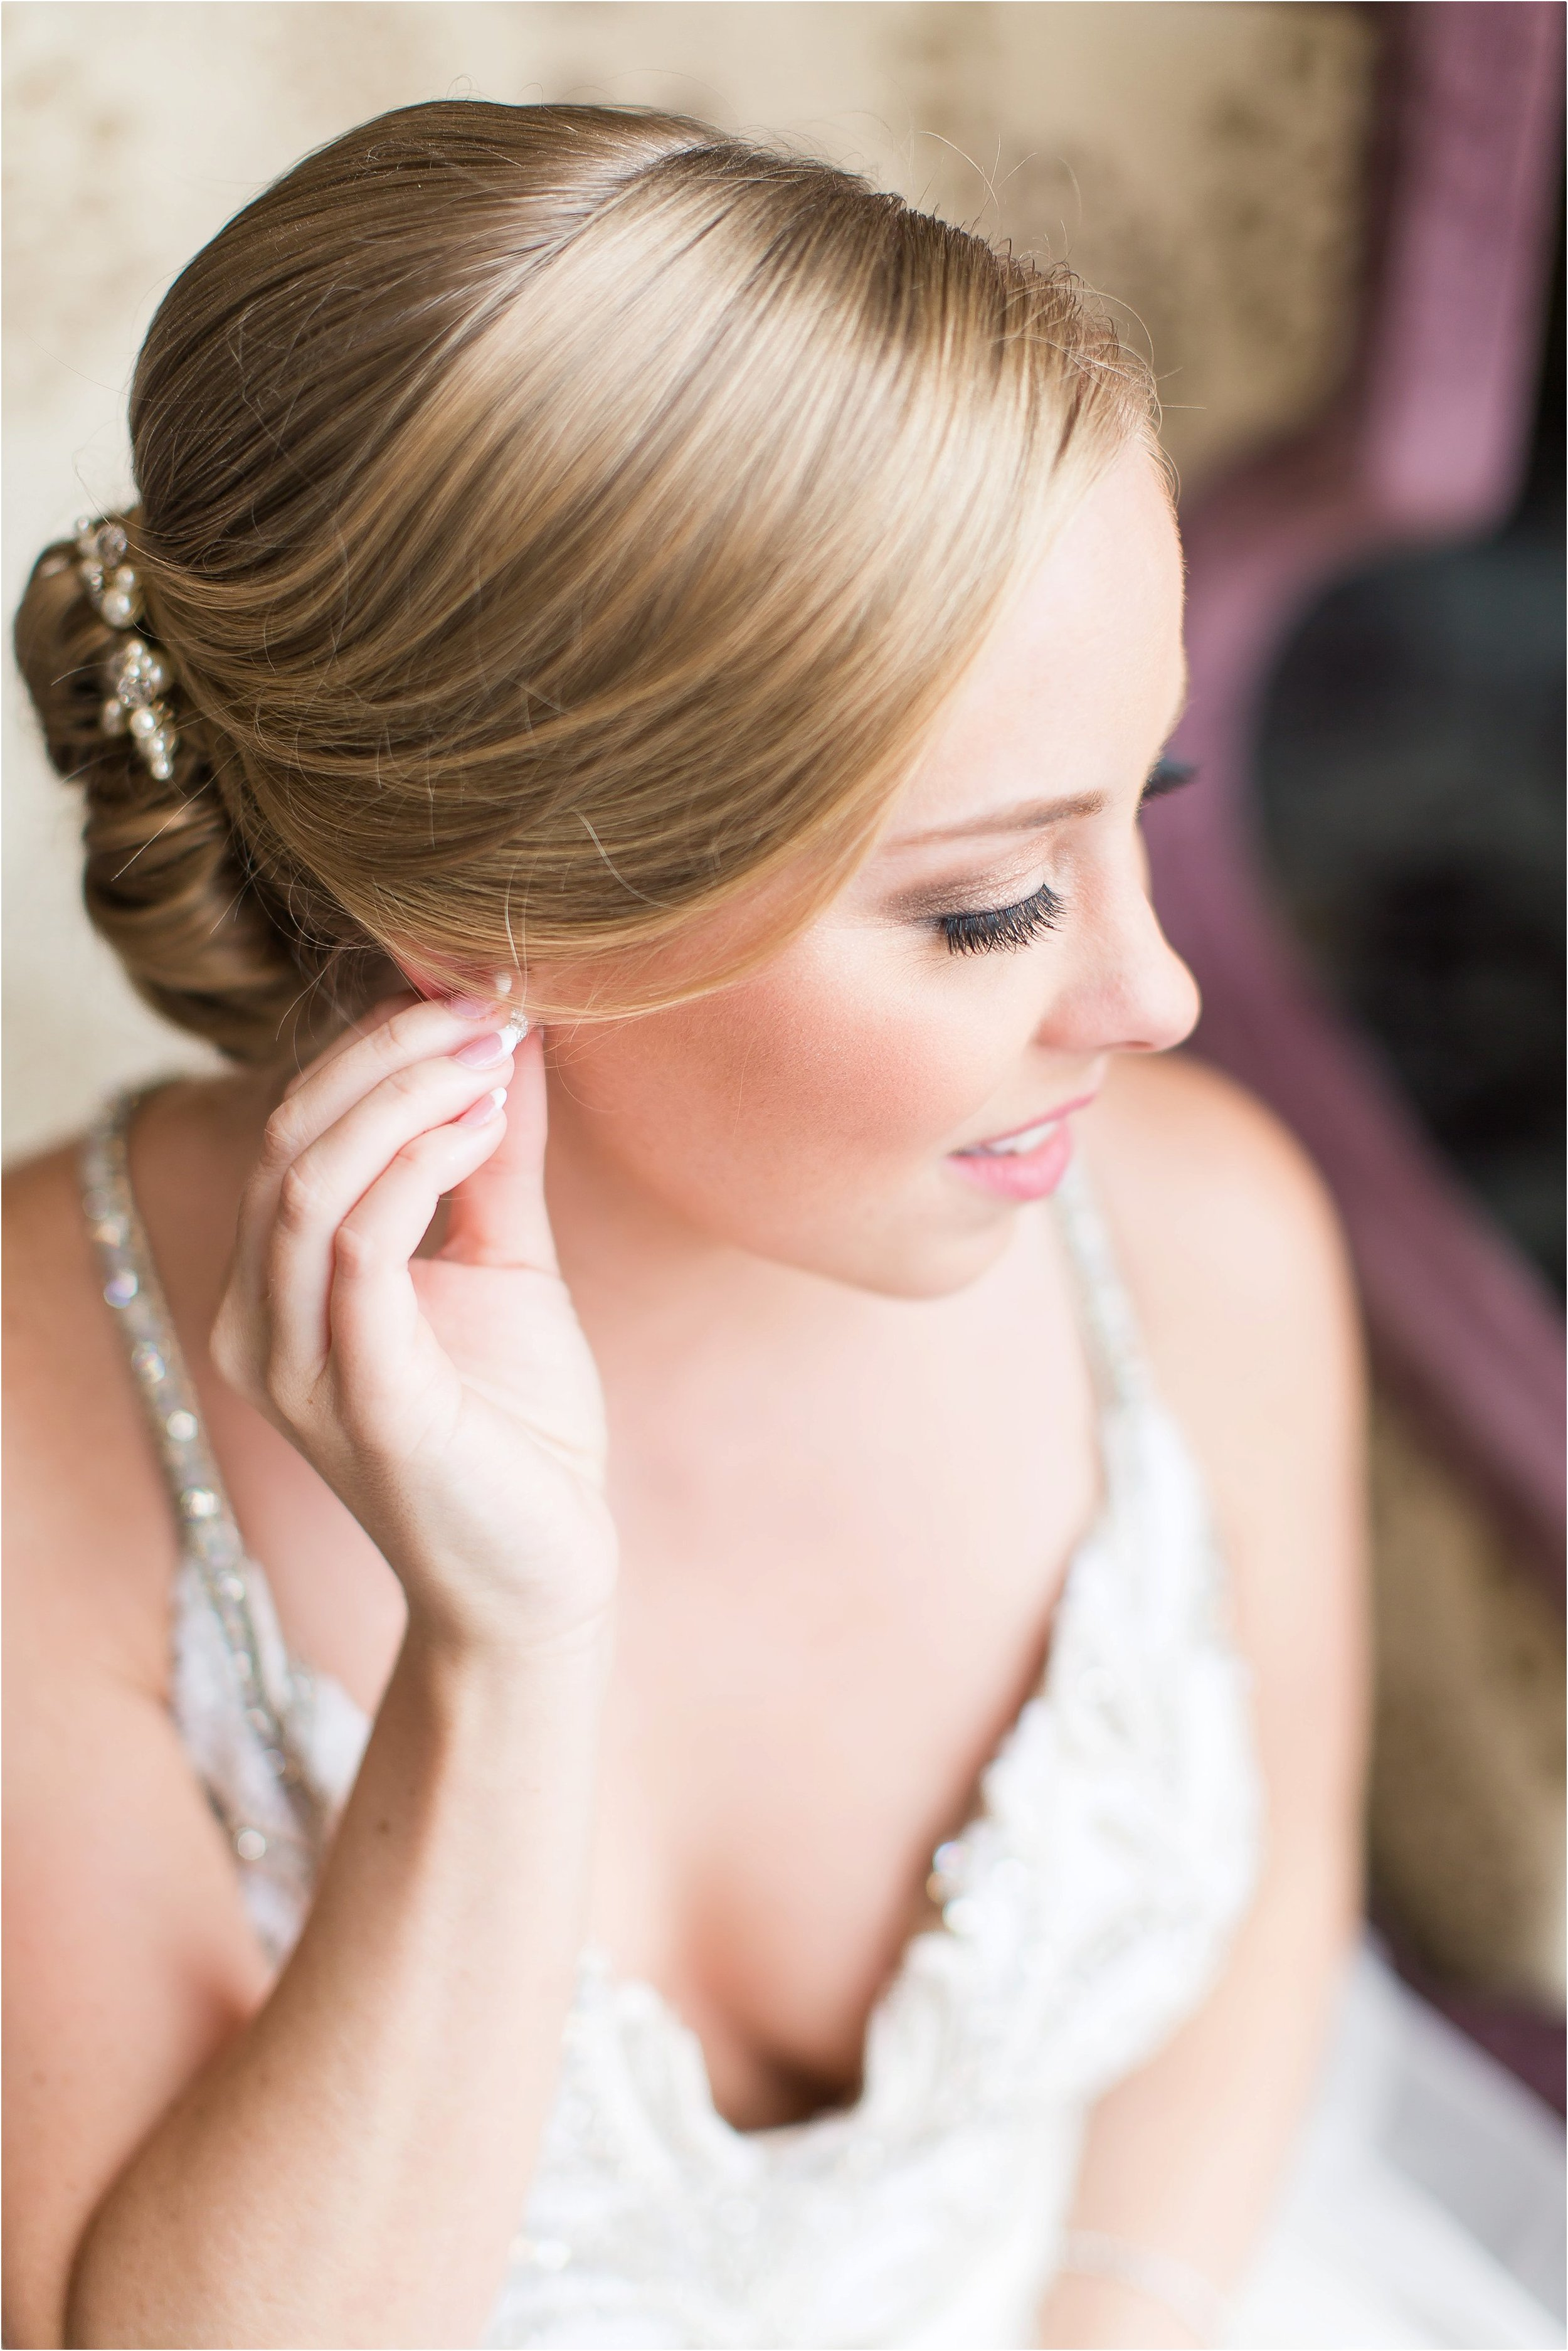 Hayley Paige wedding gown getting ready moments at Bonnet Creek Wedding by PSJ Photography